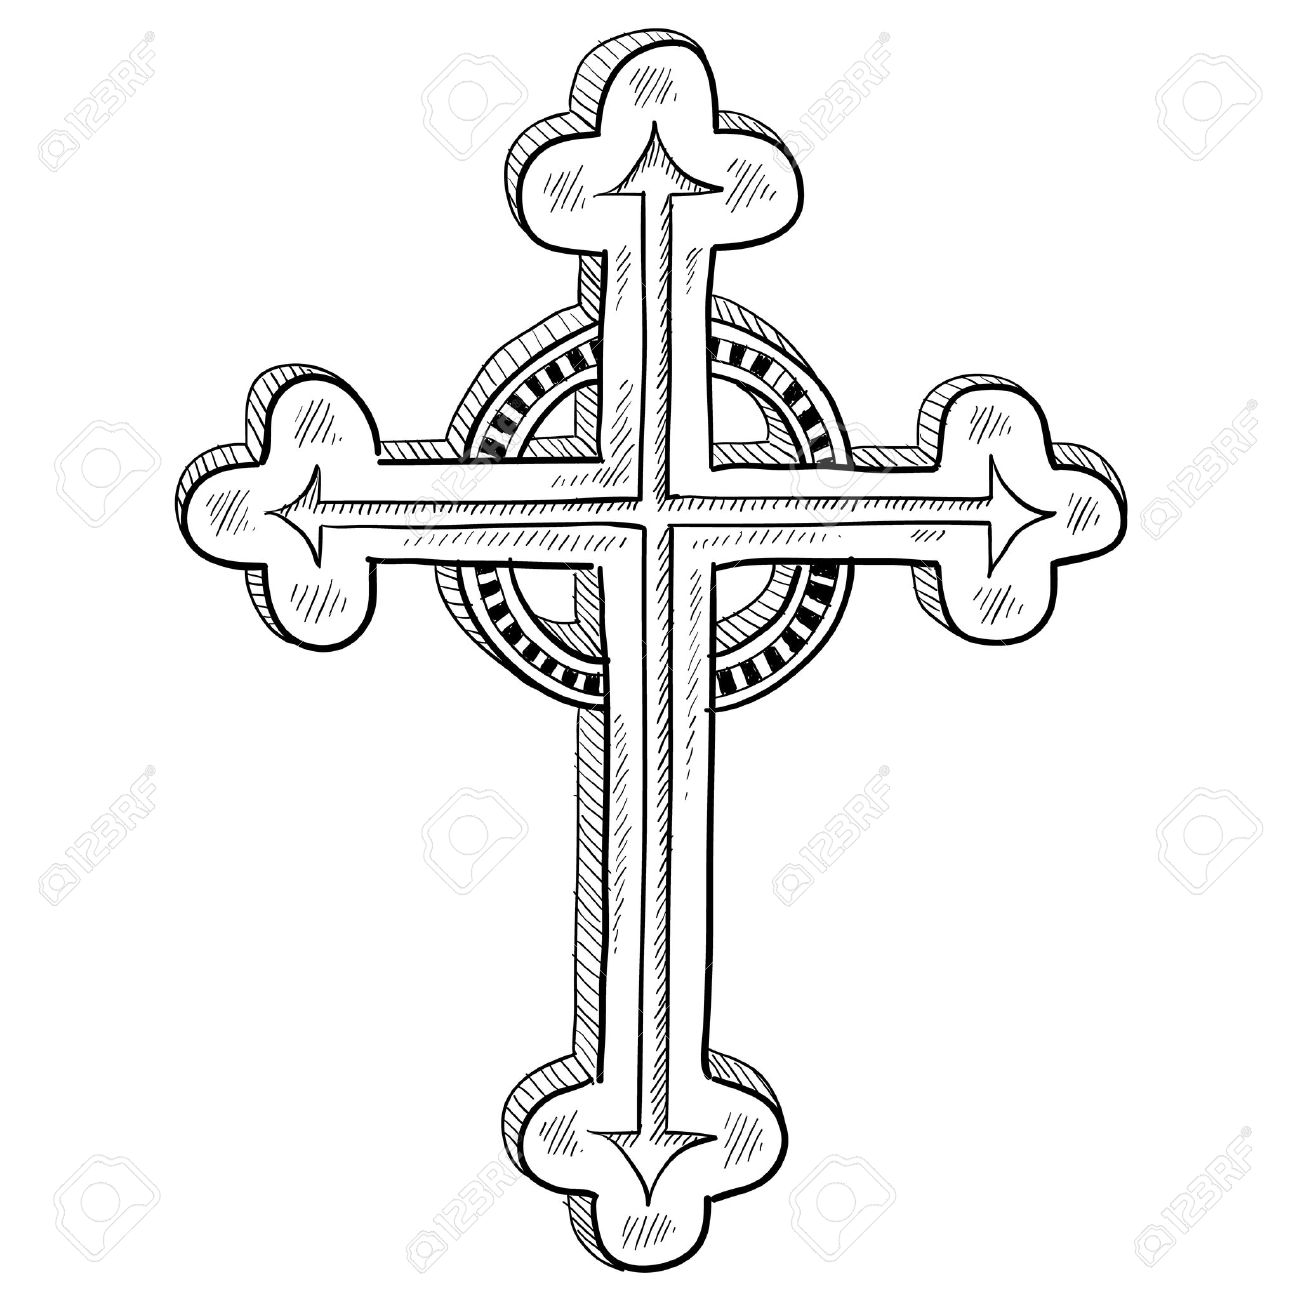 Doodle style Greek Orthodox cross illustration in vector format.